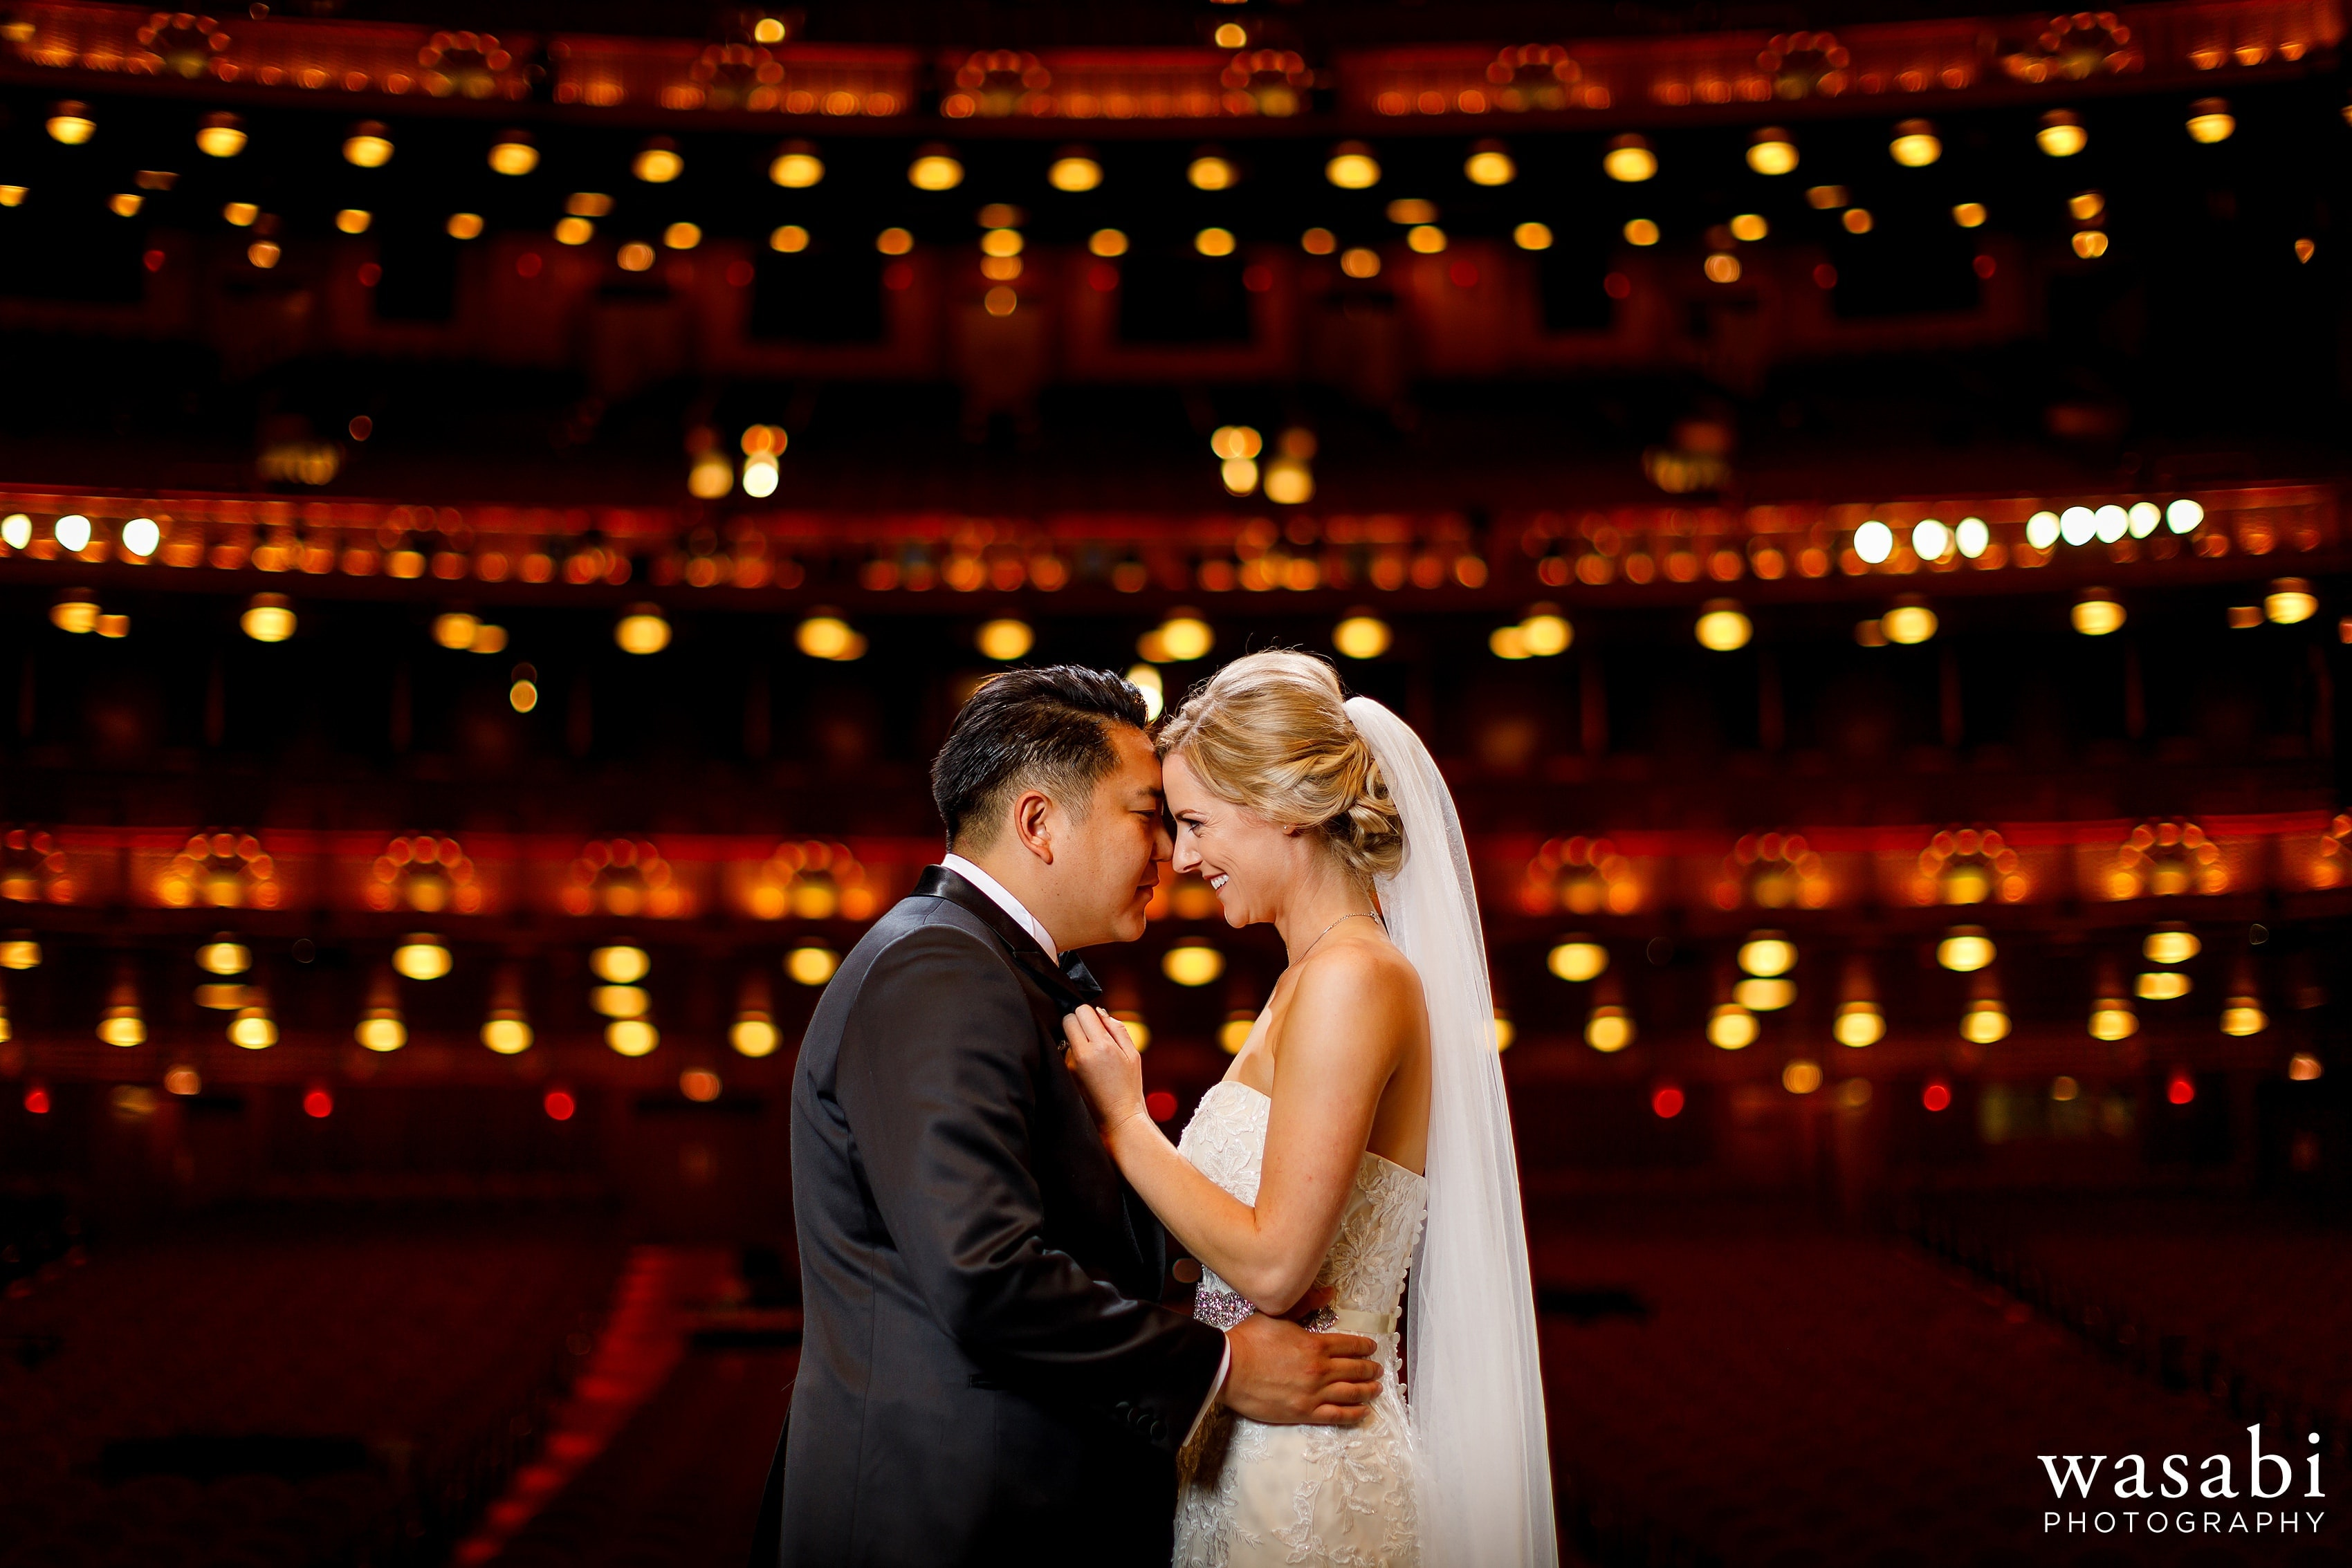 Bride and groom portrait on stage inside the Civic Opera Building in downtown Chicago with theatre in the background